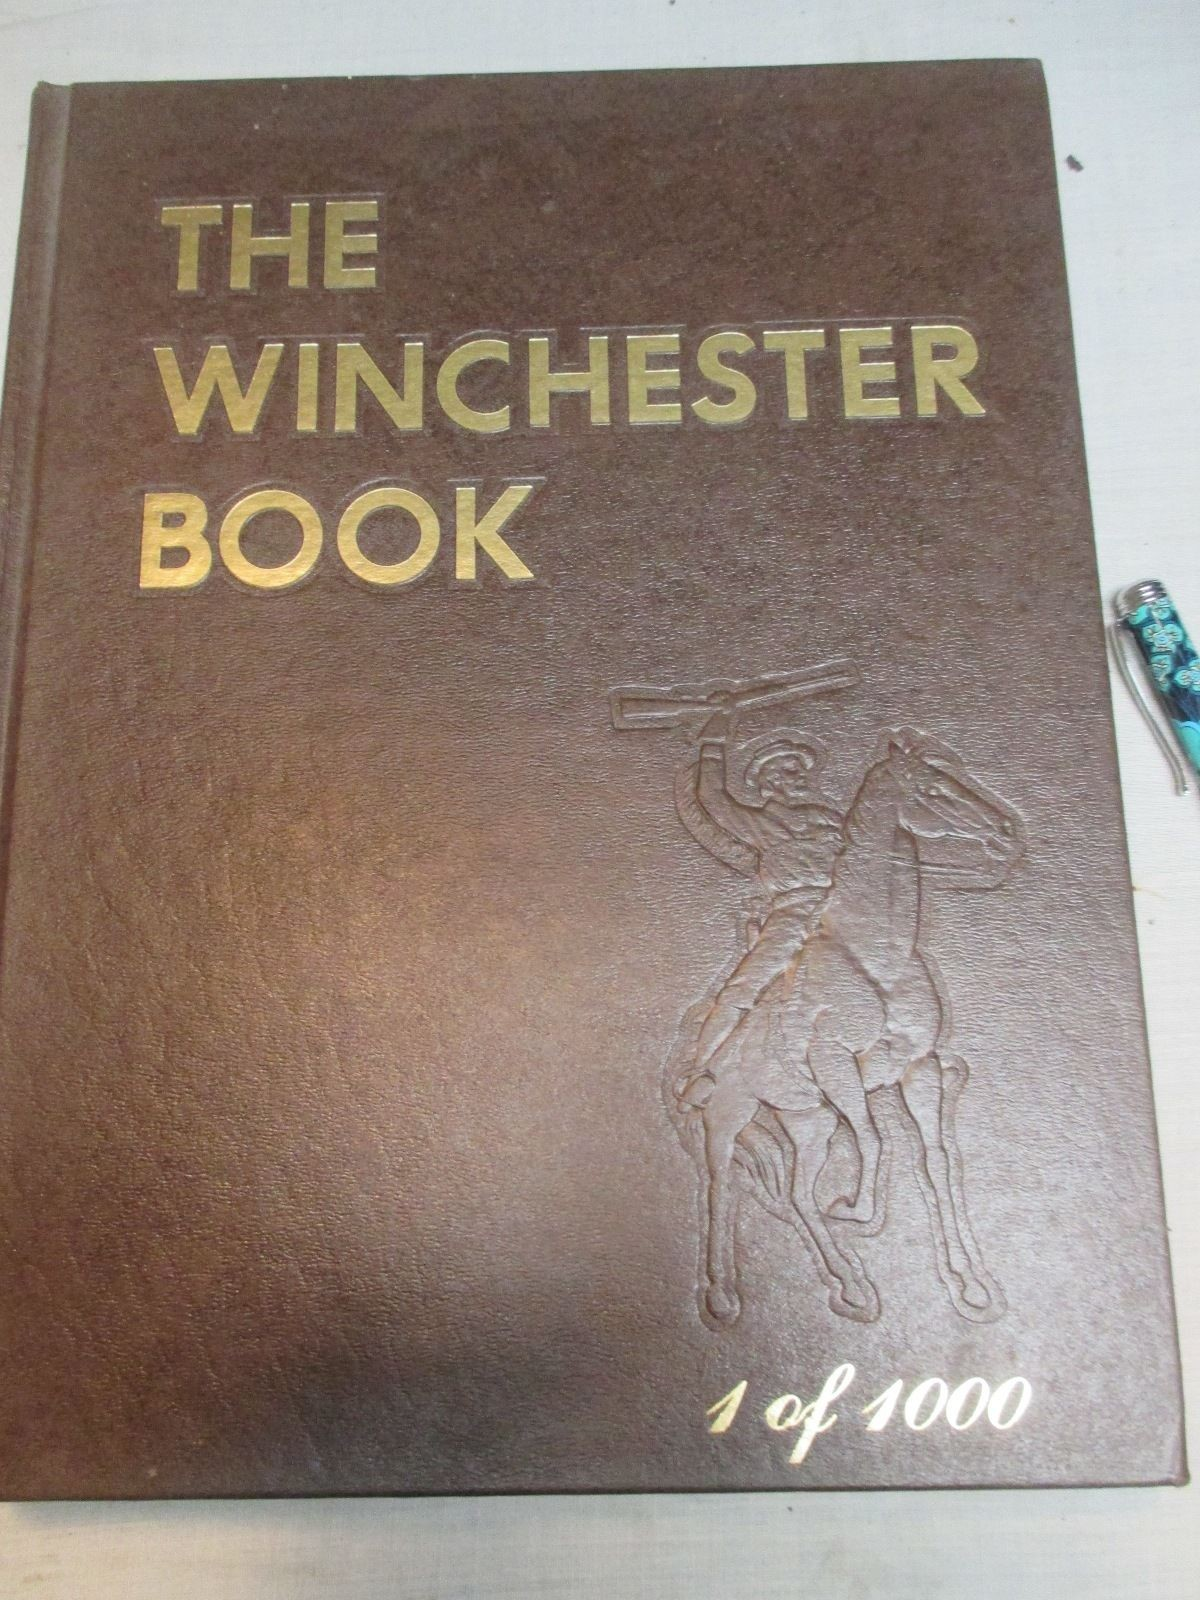 The Winchester Book ~ SIGNED FIRST EDITION - VERY RARE